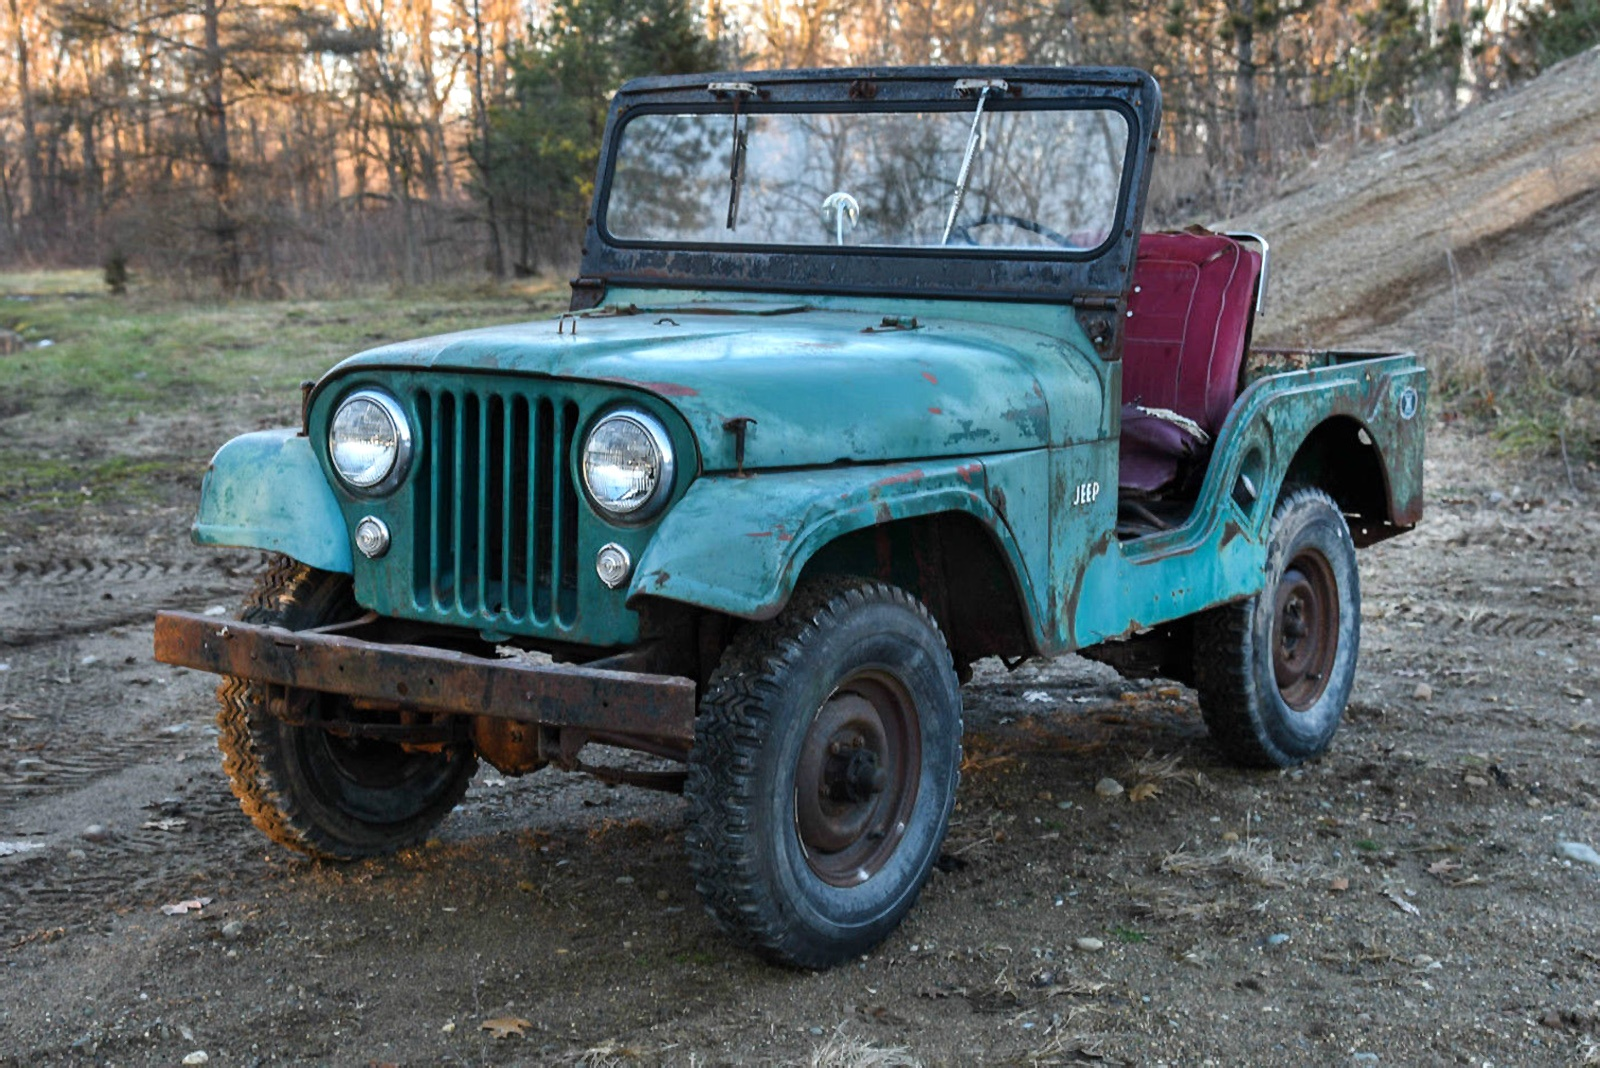 55 willys jeep wiring diagram 1955 cj5 willys jeep wiring schematic diagram 9 diddlhausen  1955 cj5 willys jeep wiring schematic